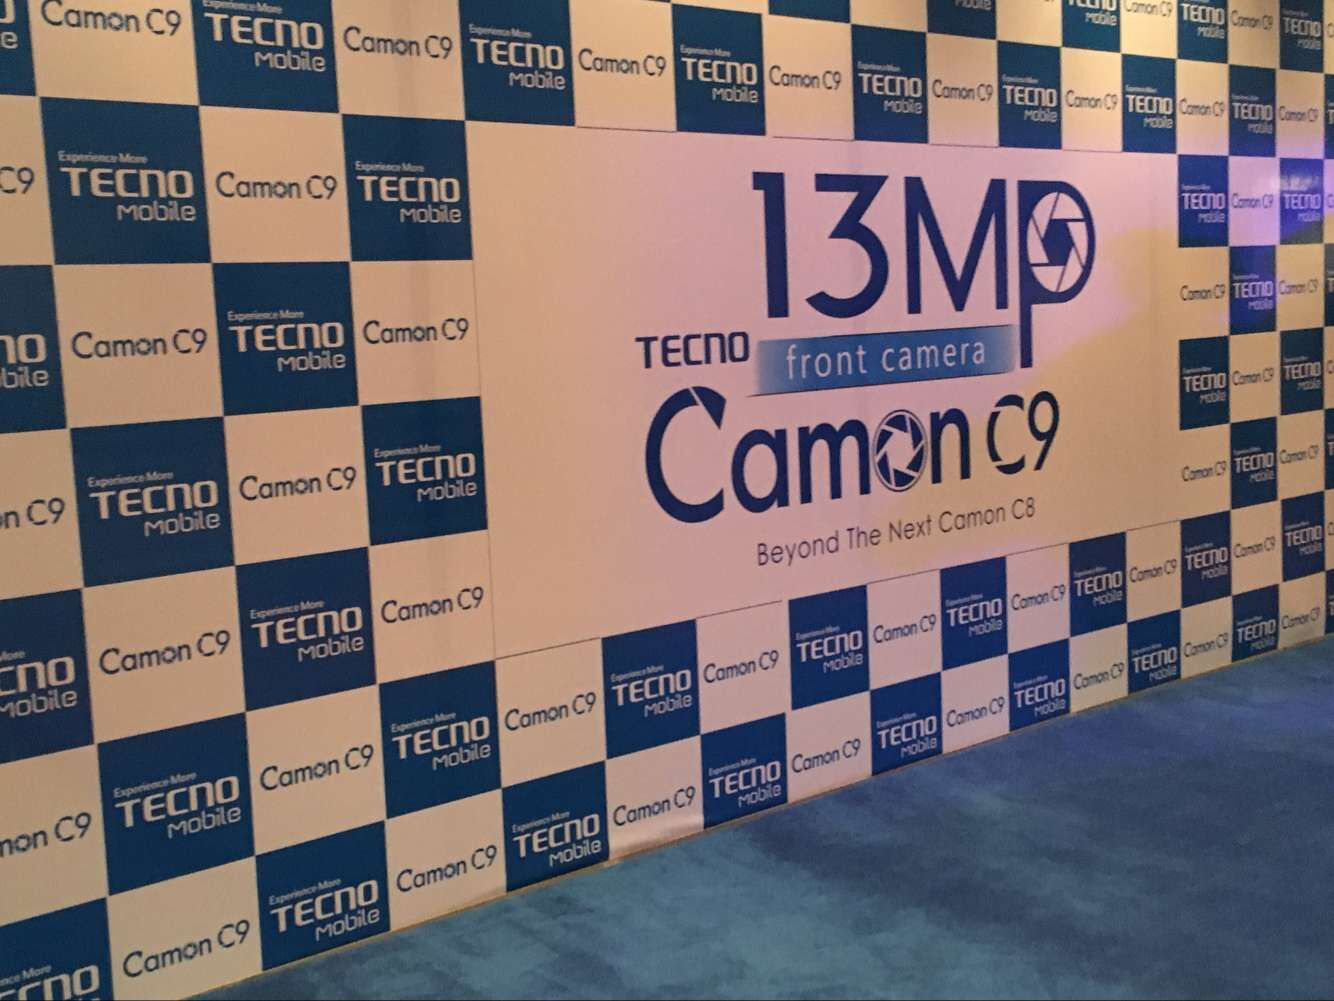 TECNO unveils Camon C9, first dual 13.0MP Front/ Back camera phone